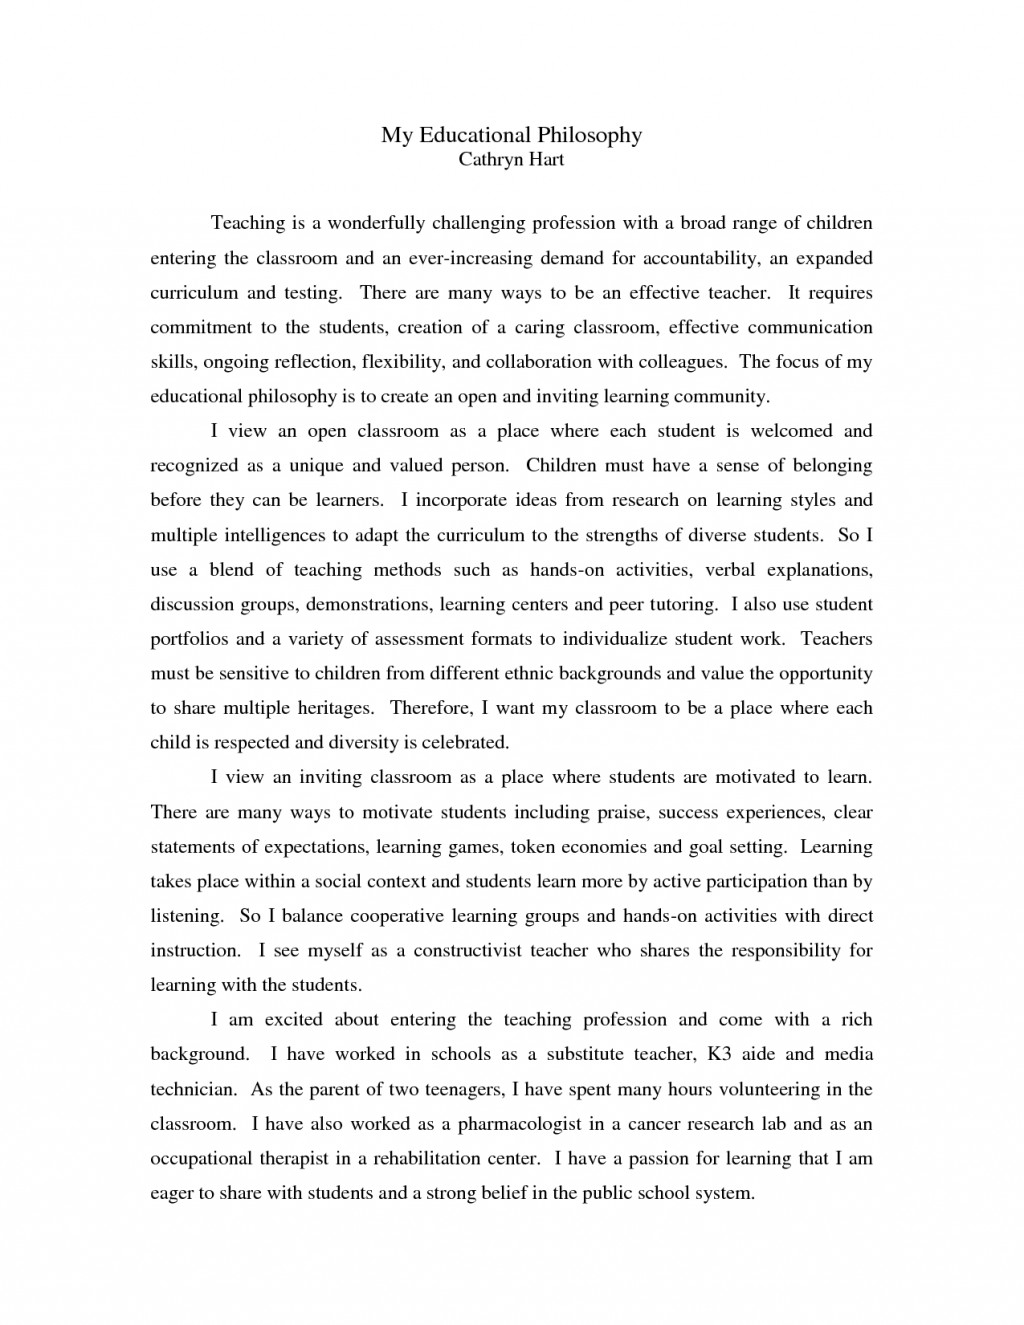 007 Essay Example Philosophy Of Teaching Dreaded My Personal And Learning Education Pdf Large